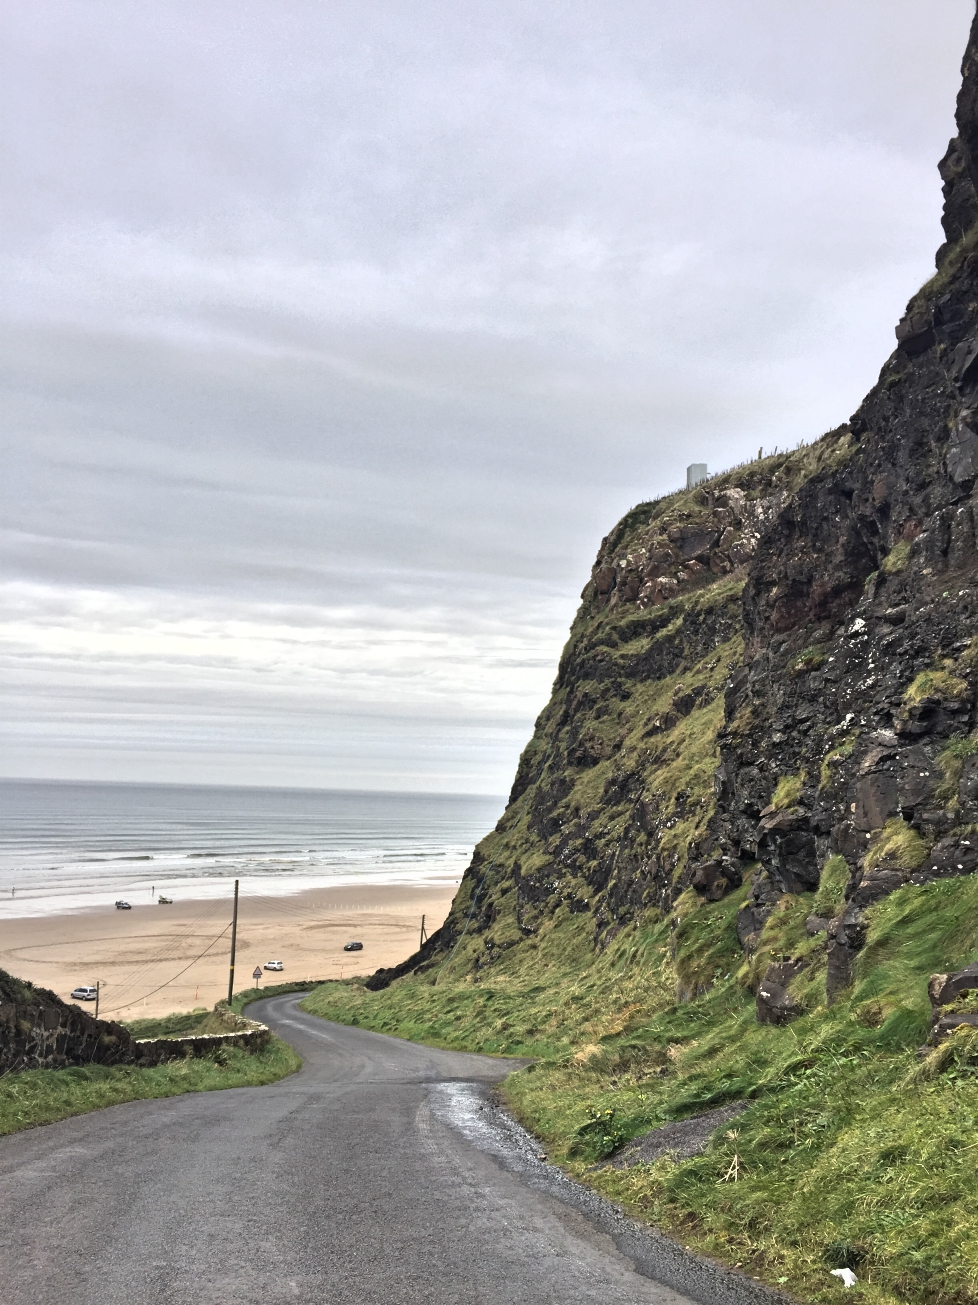 benone_beach_downhill_londonderry_limavady_niexplorer_ni_explorer_northern_ireland (9).jpg